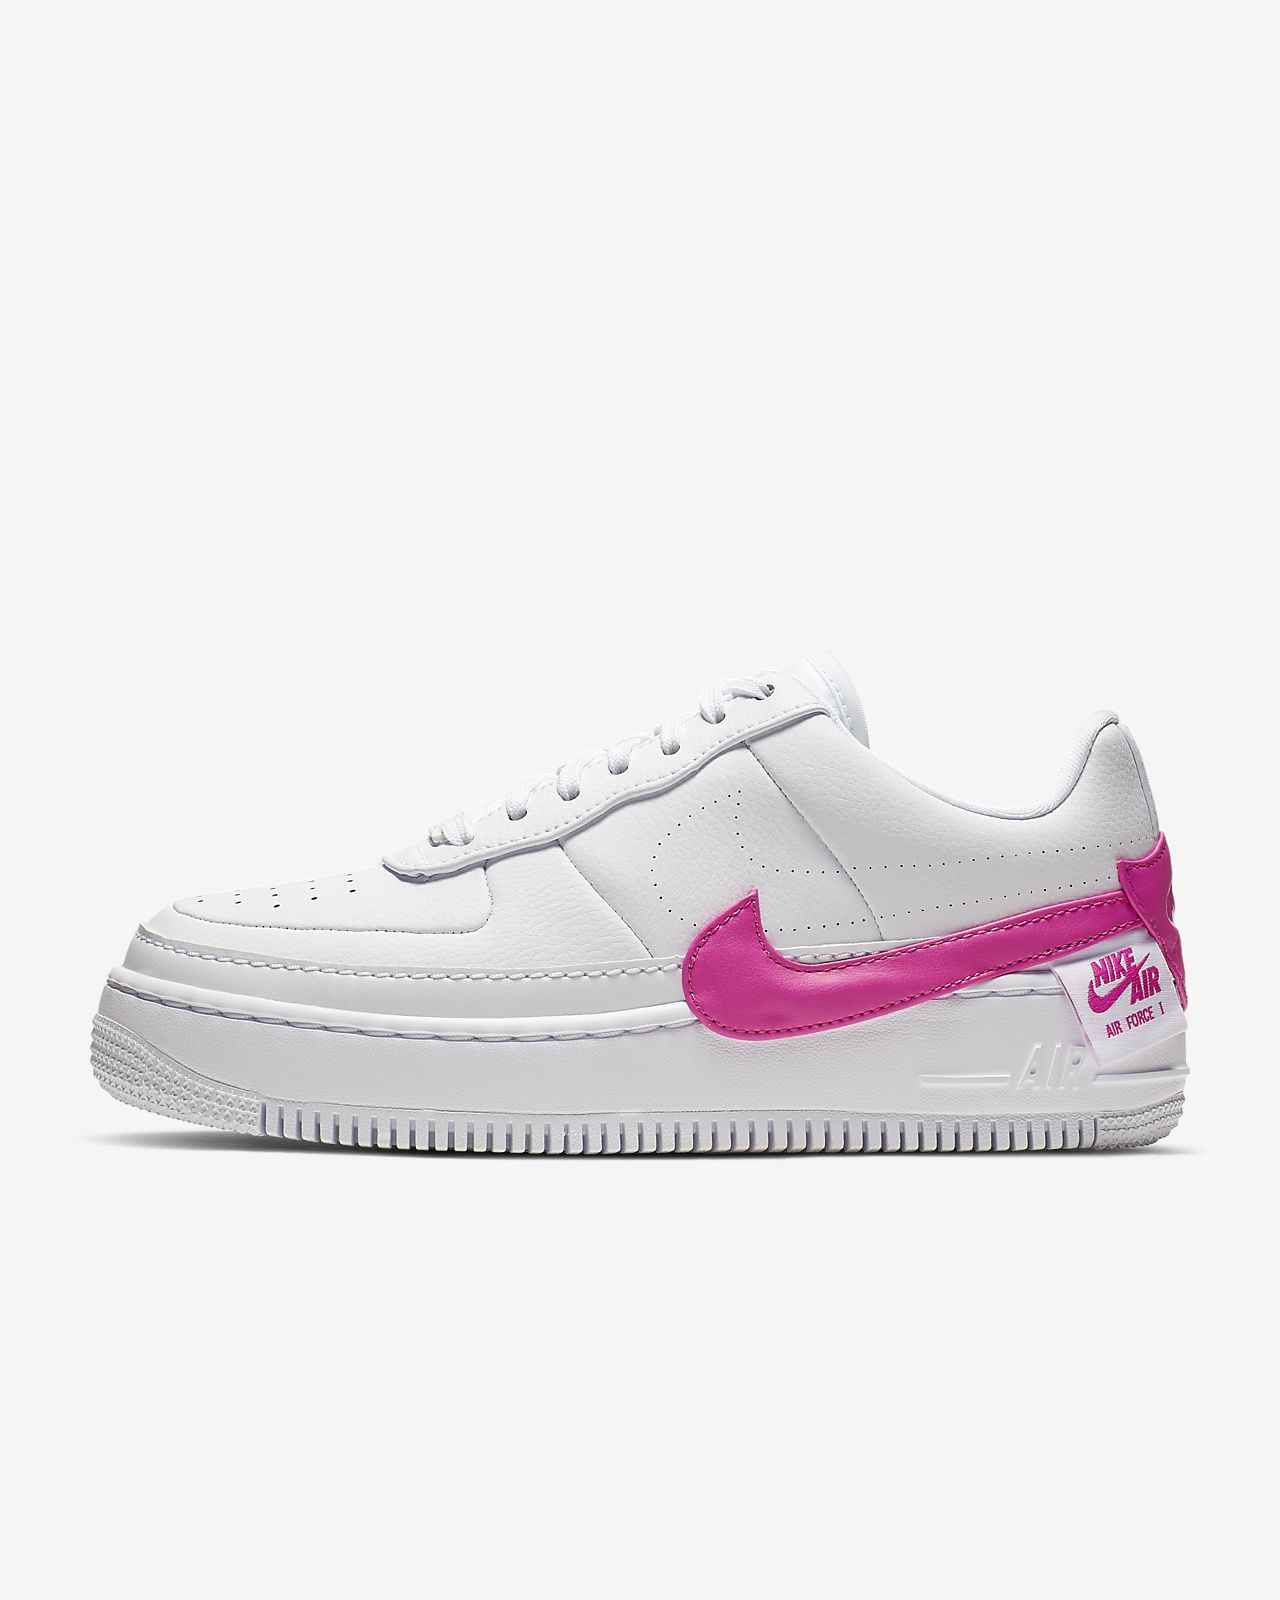 the latest b5ecc af7a0 ... Nike Air Force 1 Jester XX Schuh